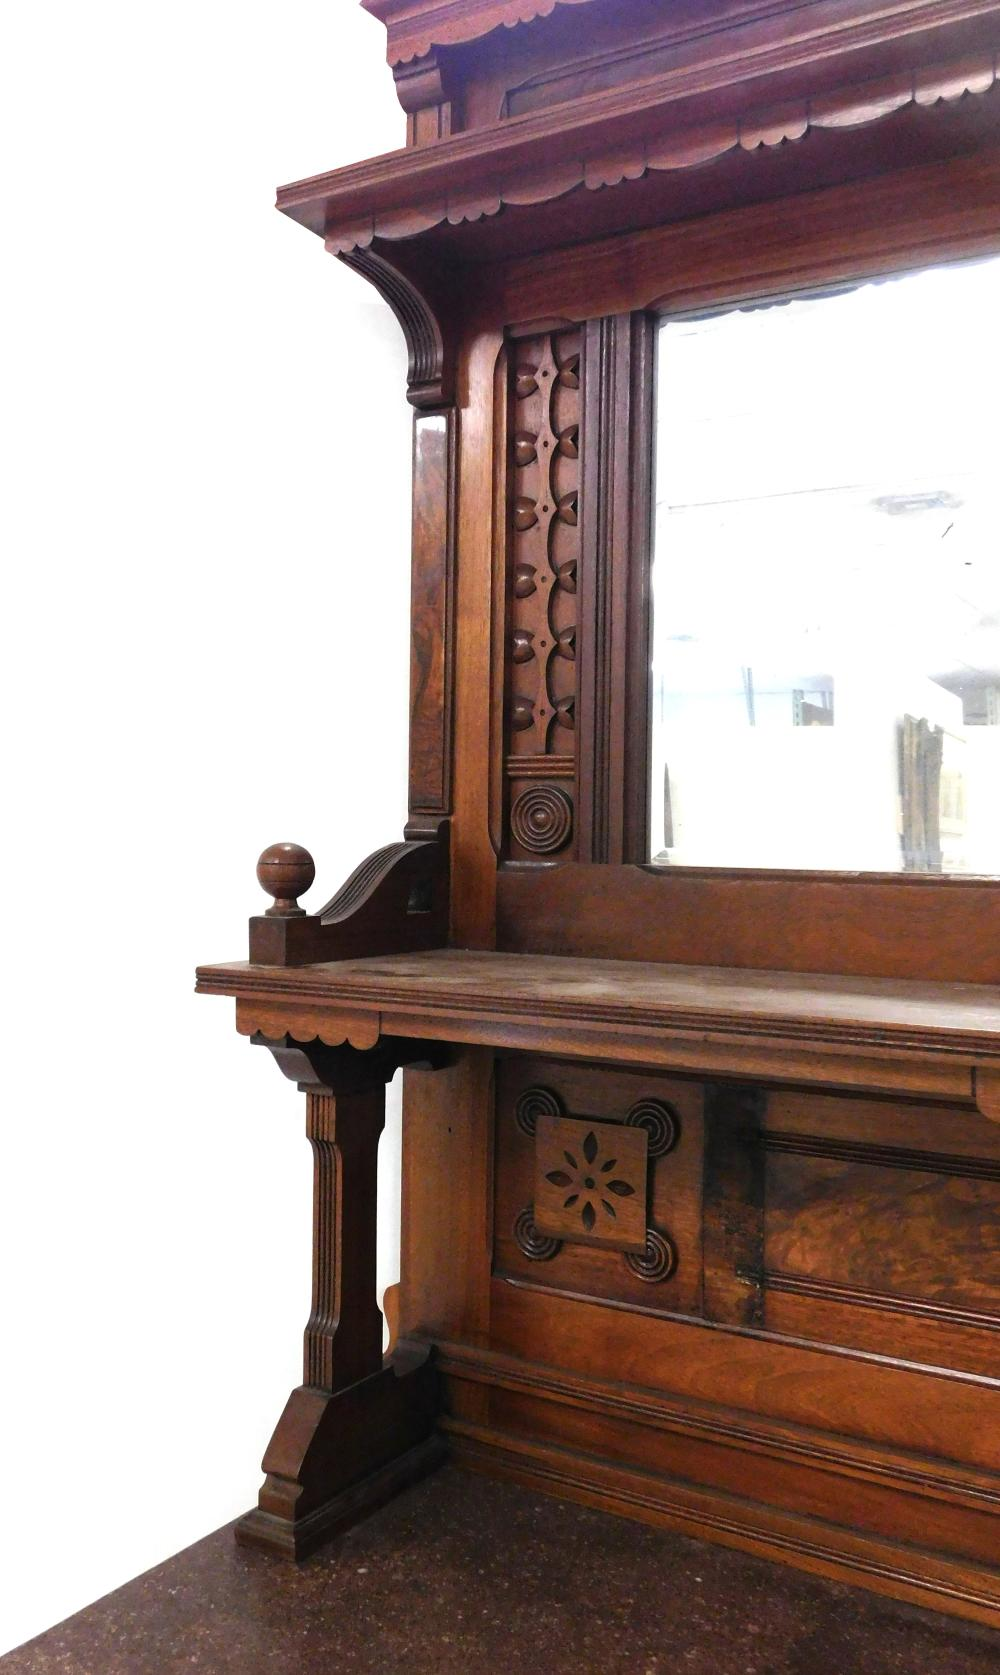 Breakfront, Eastlake, walnut, mirror and shelves over chocolate marble top, wear consistent with age and use, 91 ½